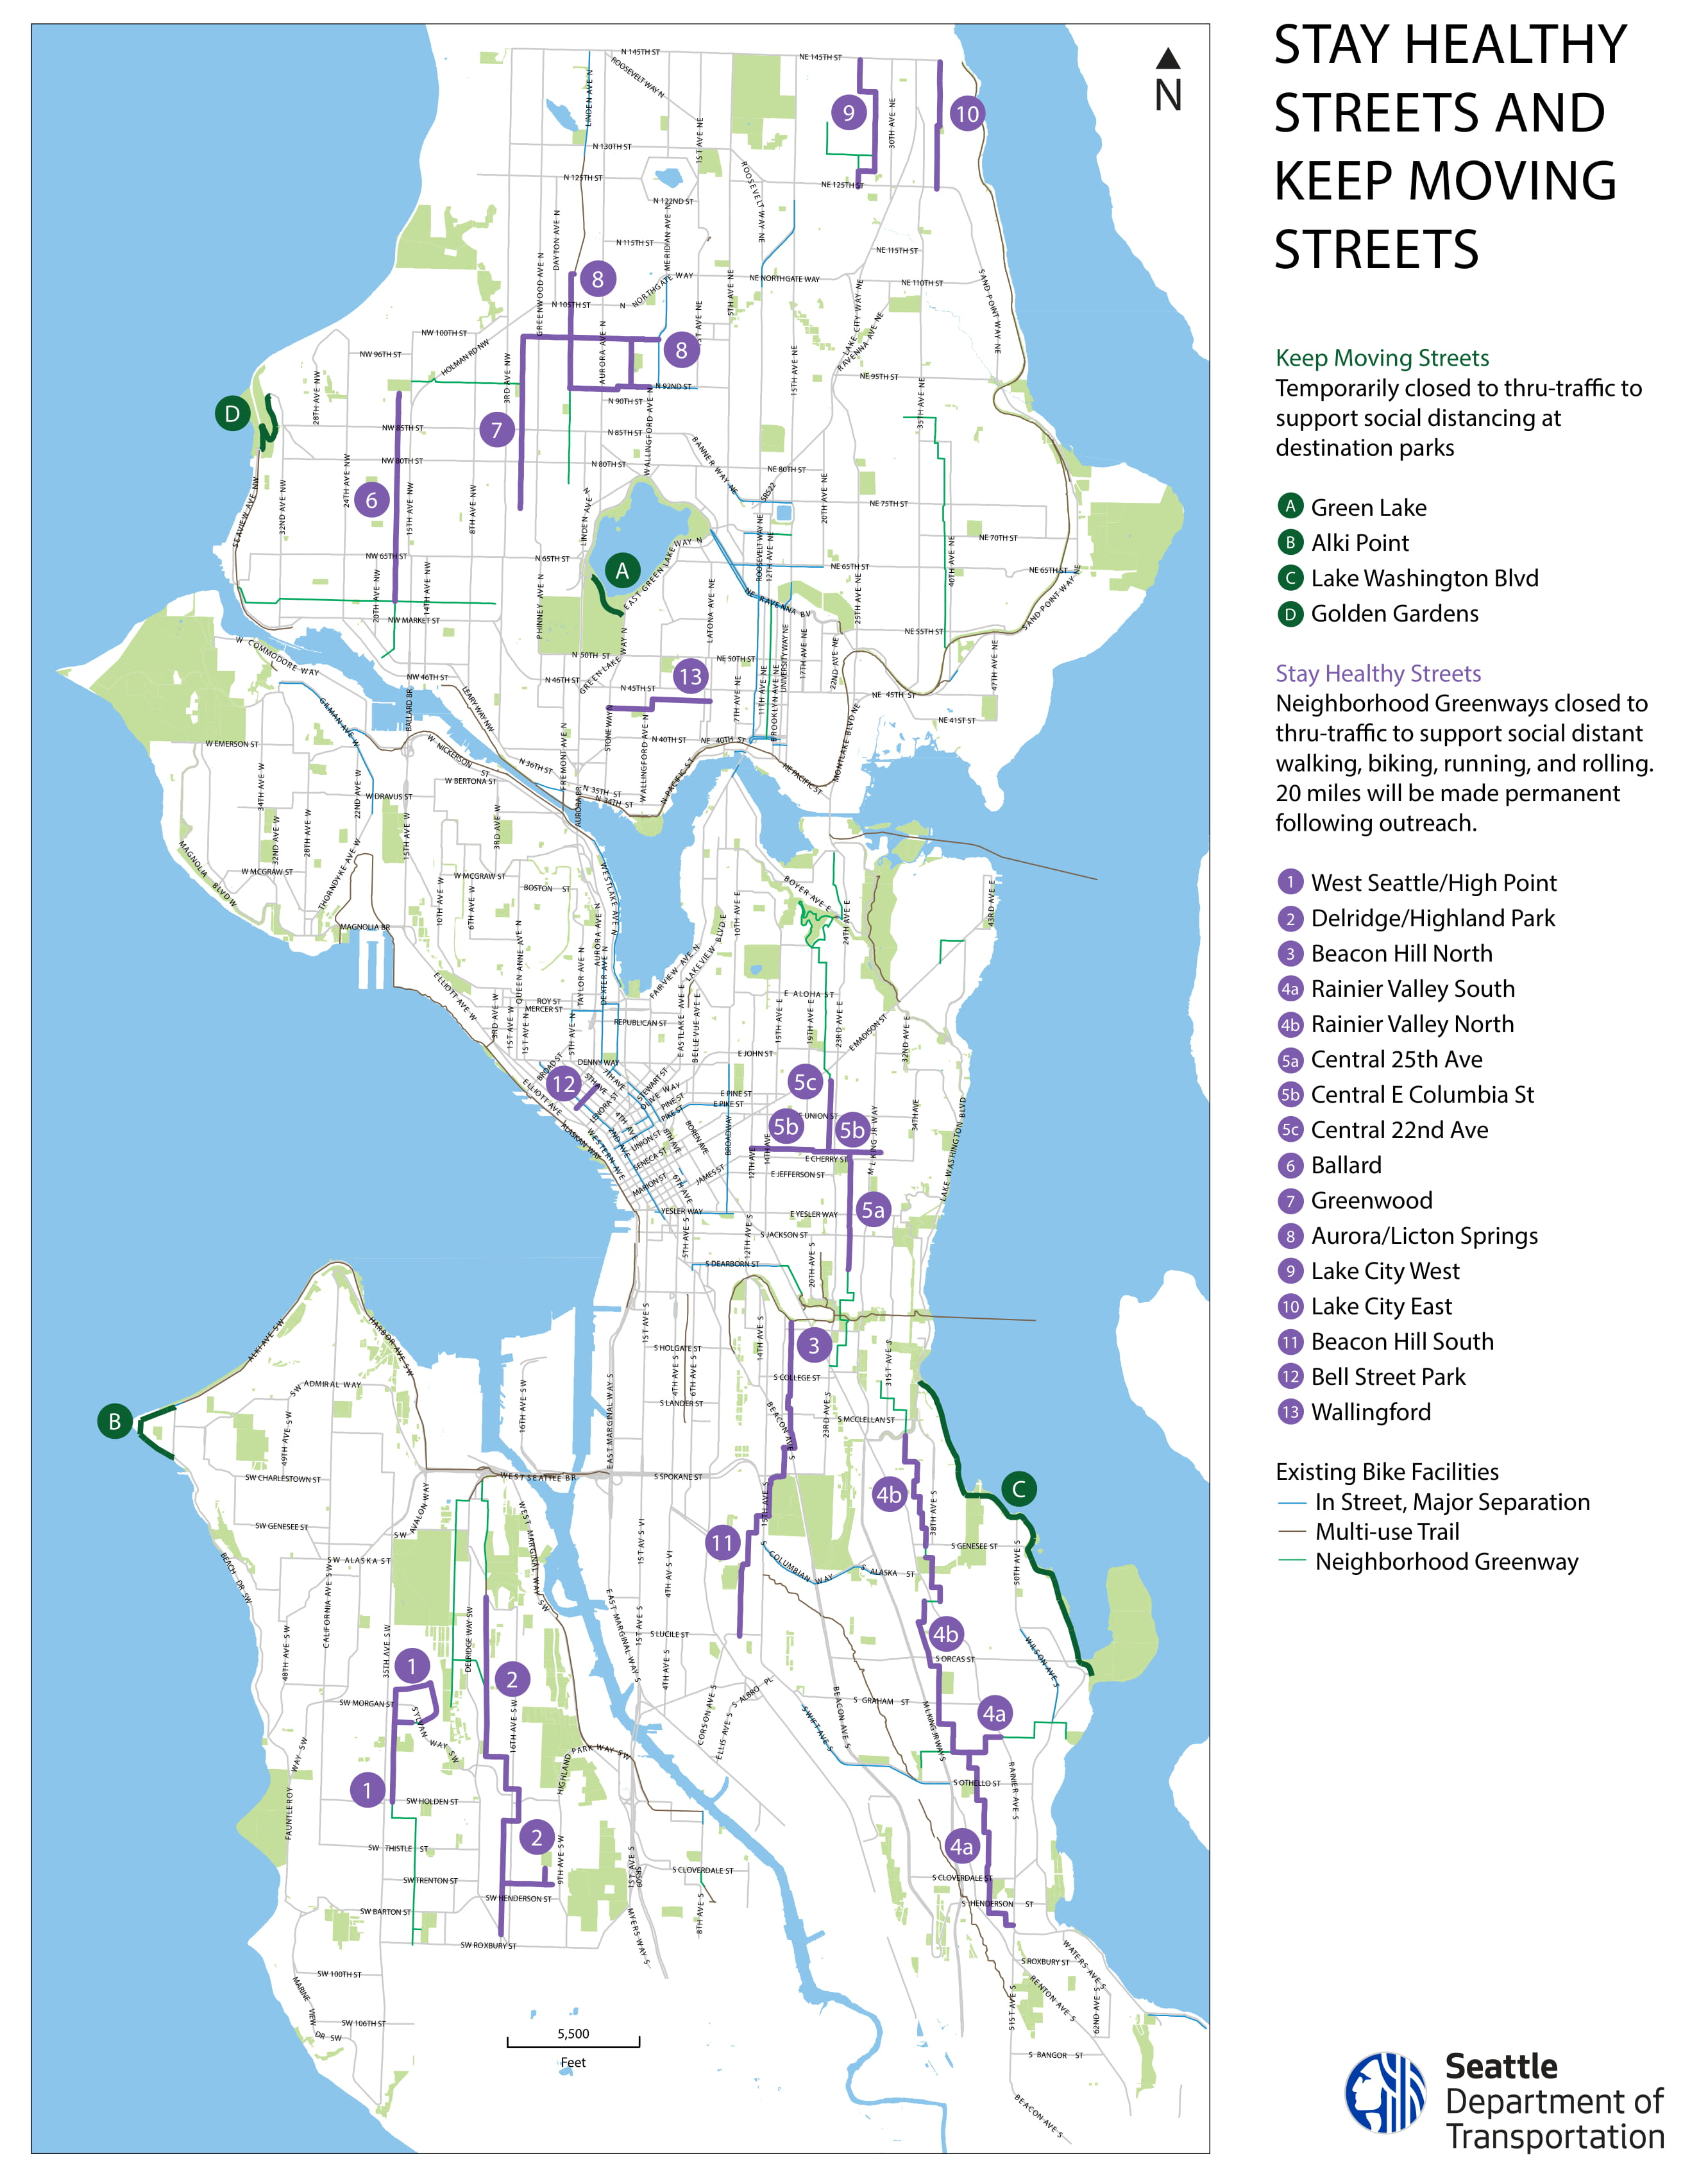 Map of Stay Healthy and Keep Moving Streets in Seattle (with labels)